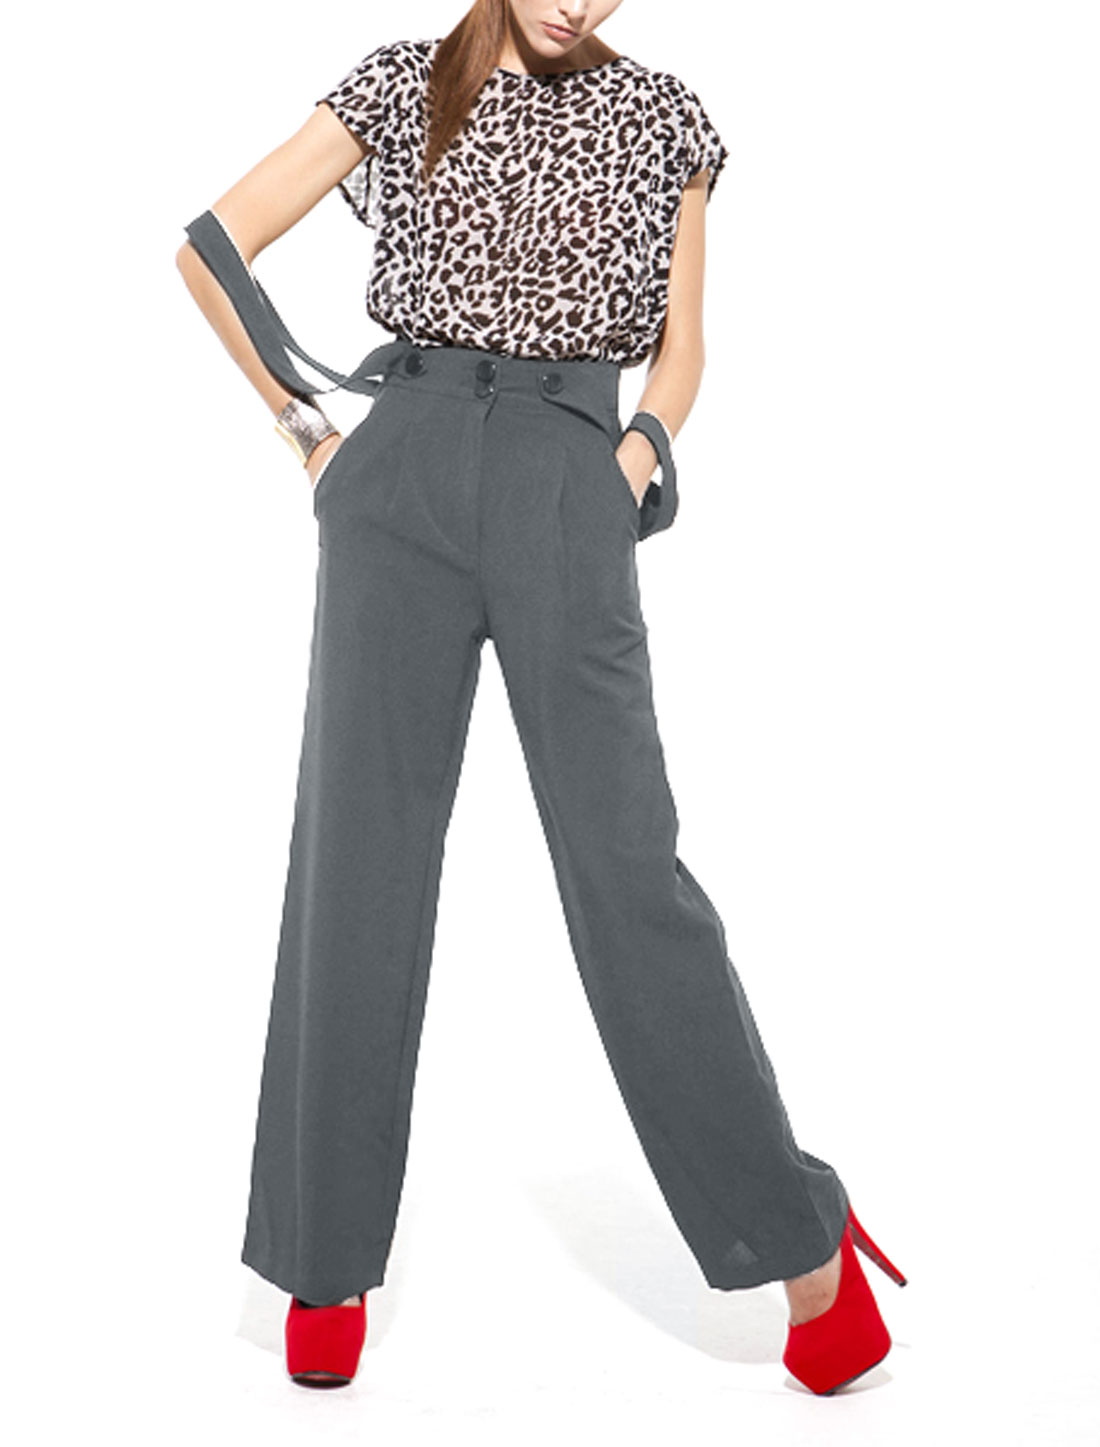 Women Concealed Zipper Side Pocket Full Length Overall Pants Dark Gray S